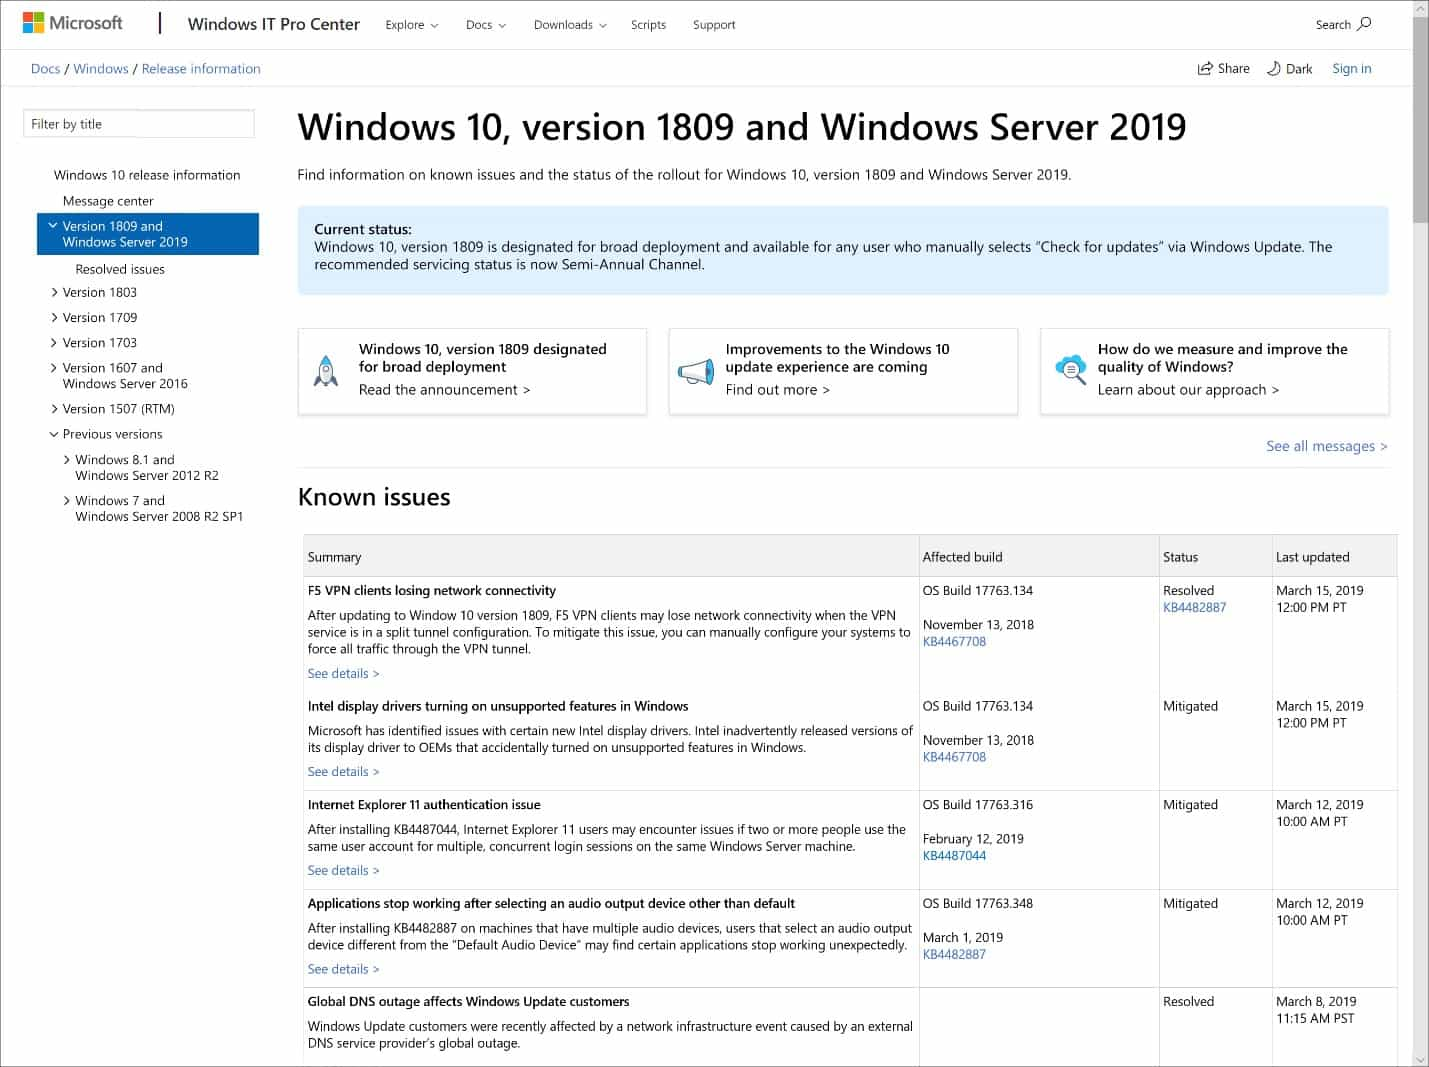 windows 10 infromovani historie